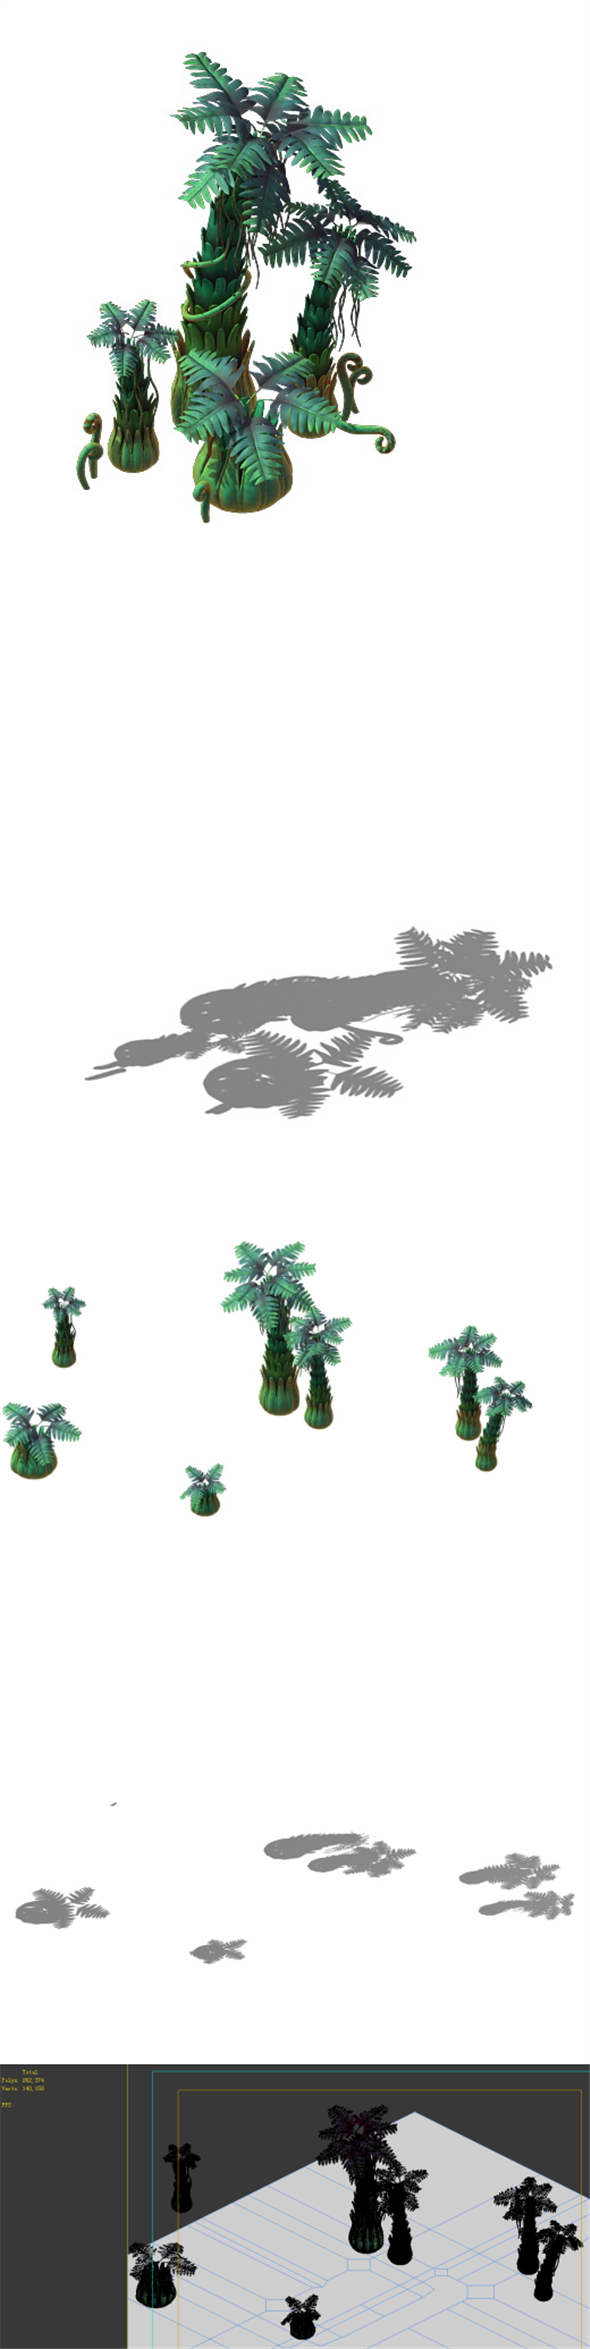 Game Model - poison Valley scenes - the poisonous tree - 3DOcean Item for Sale